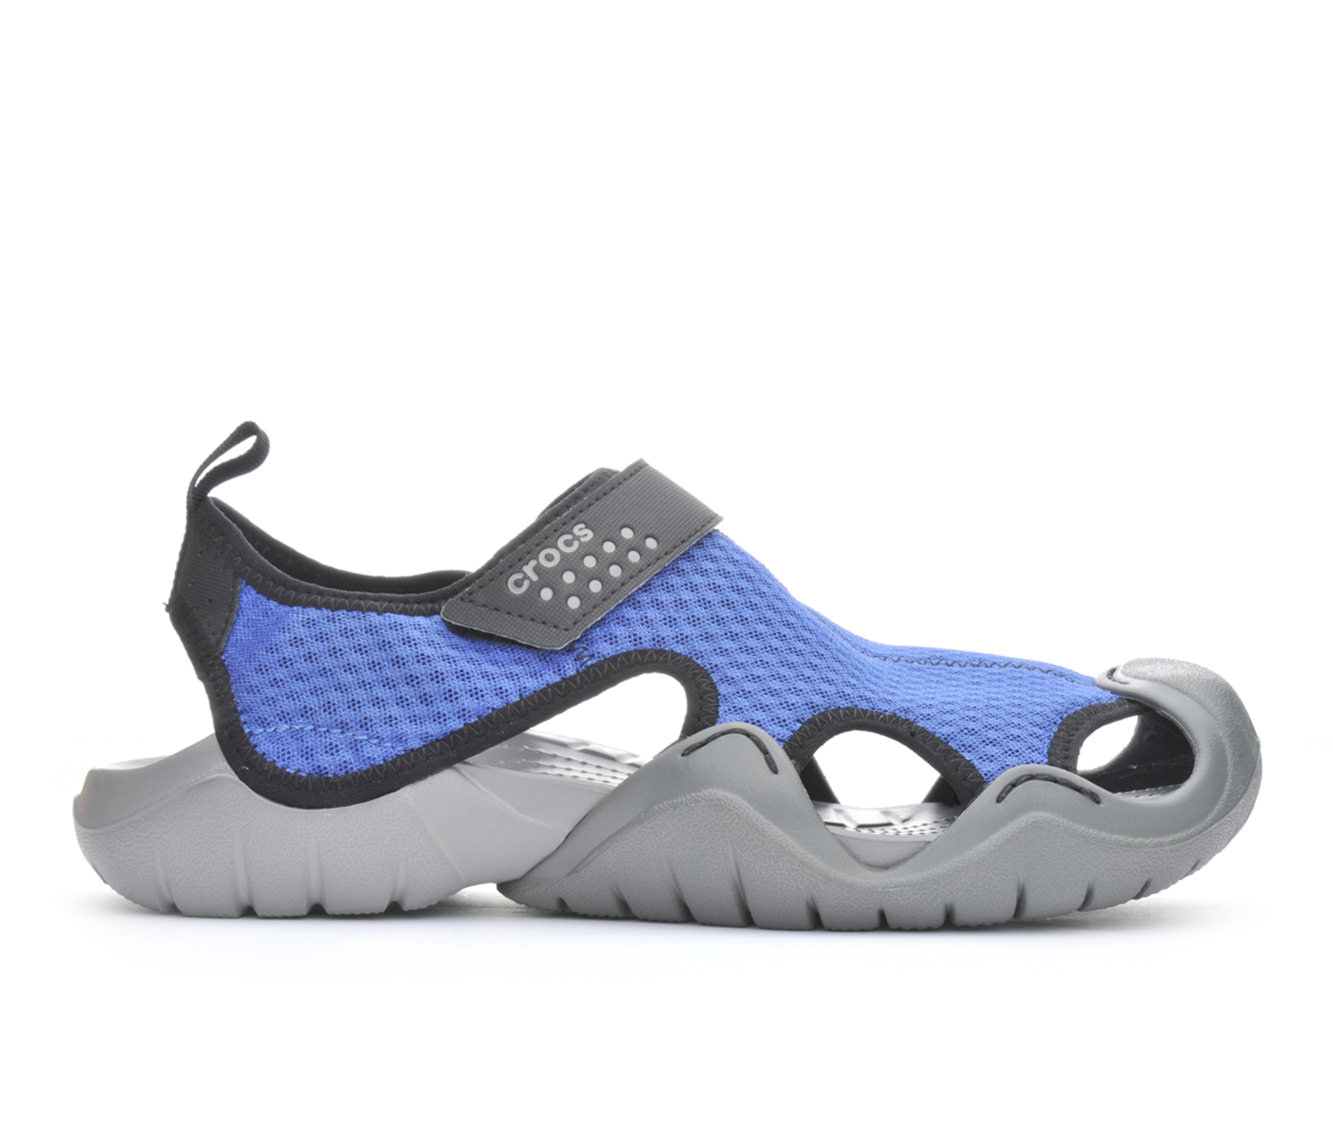 Men's Crocs Swiftwater Sandal M Sandals (Blue)